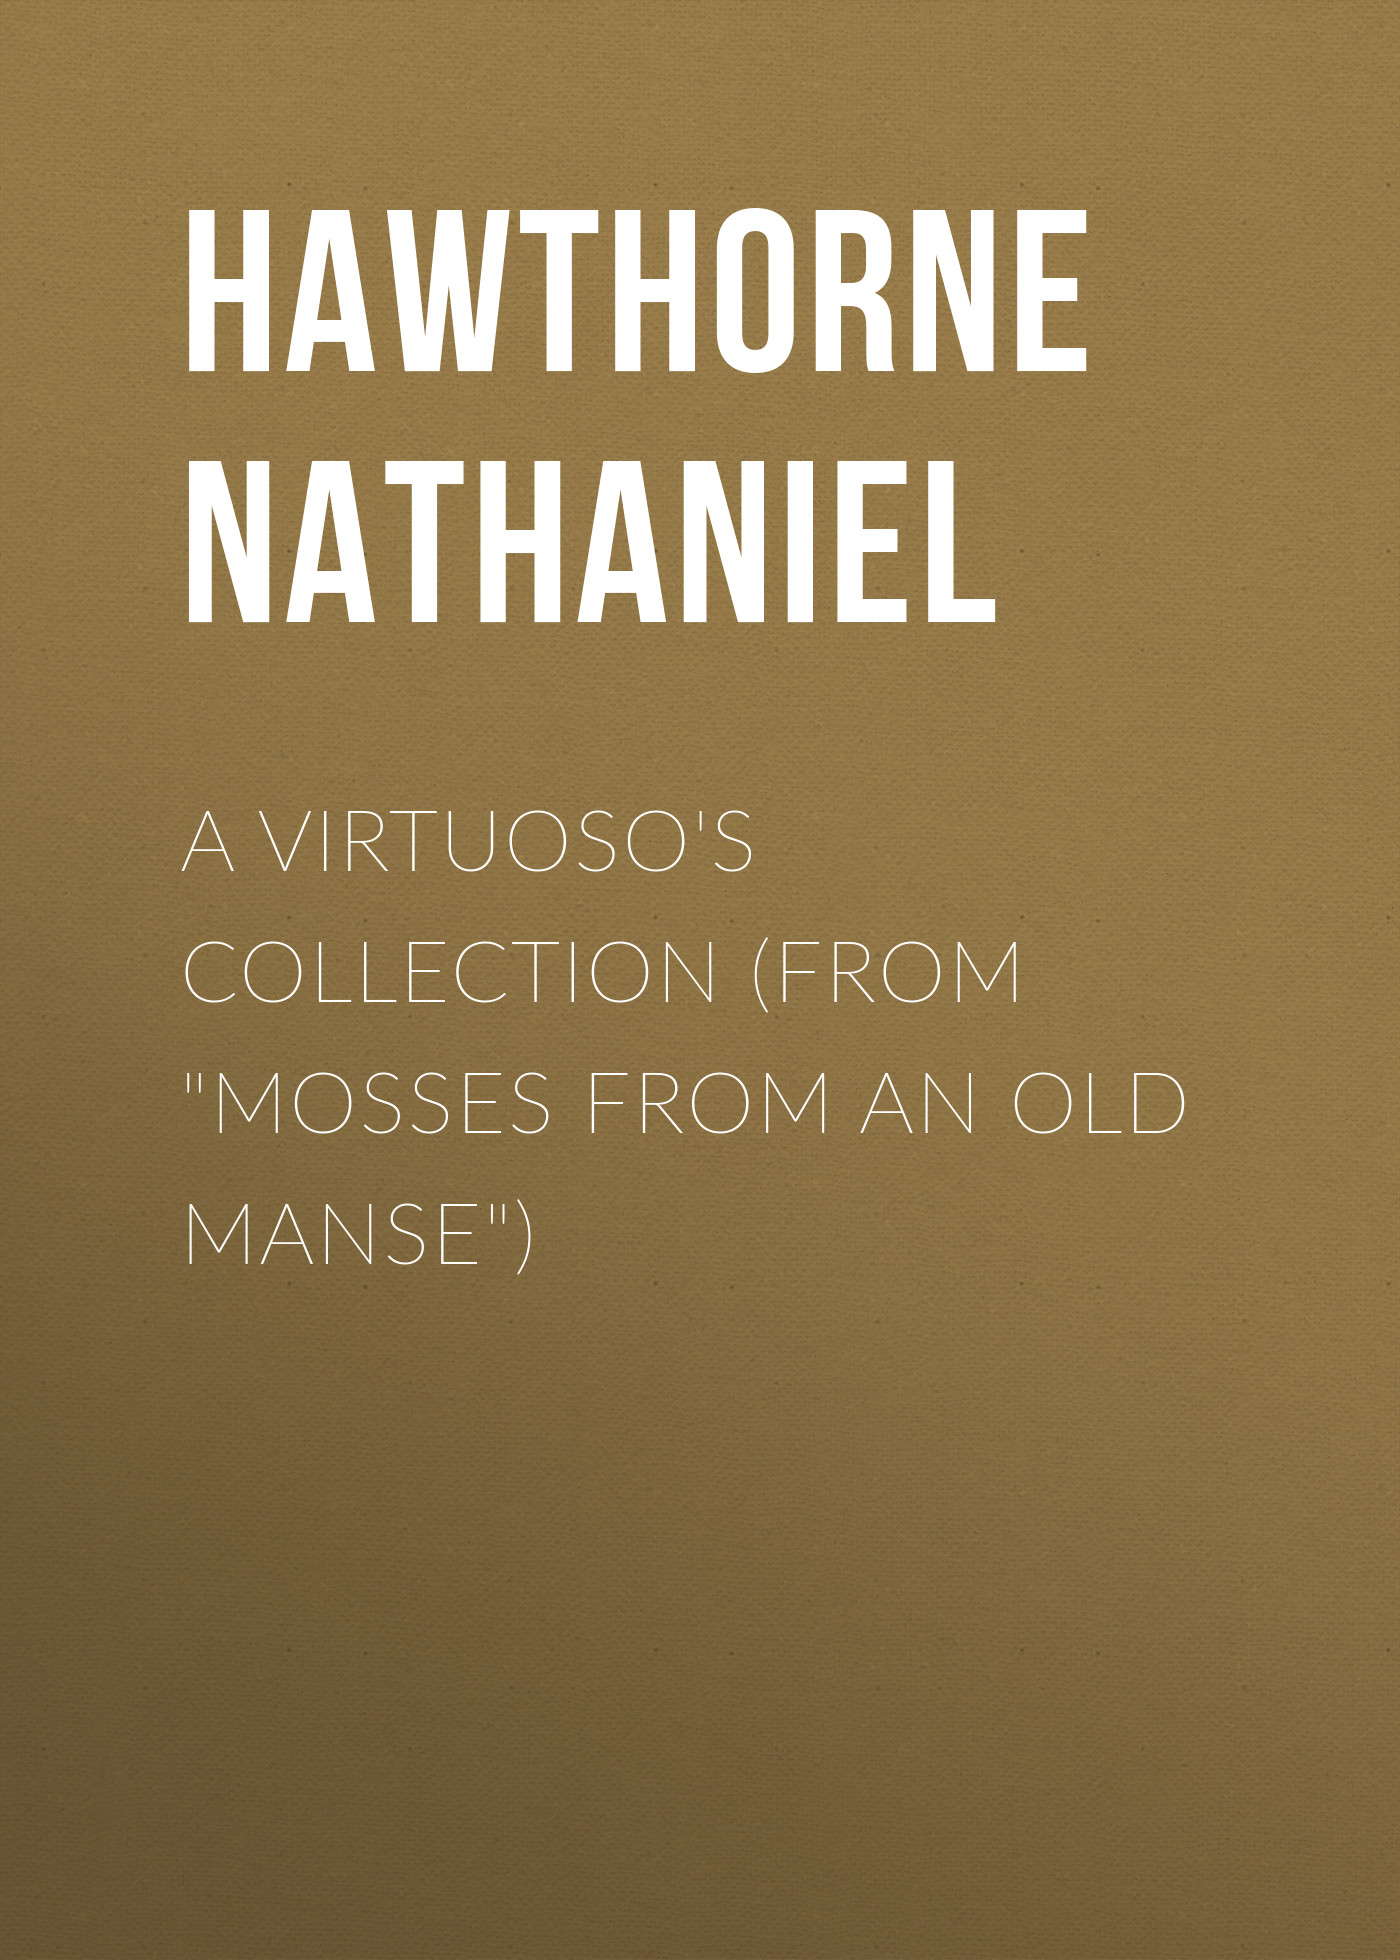 Hawthorne Nathaniel A Virtuoso's Collection (From Mosses from an Old Manse) hawthorne n mosses from an old manse the blithedale romance